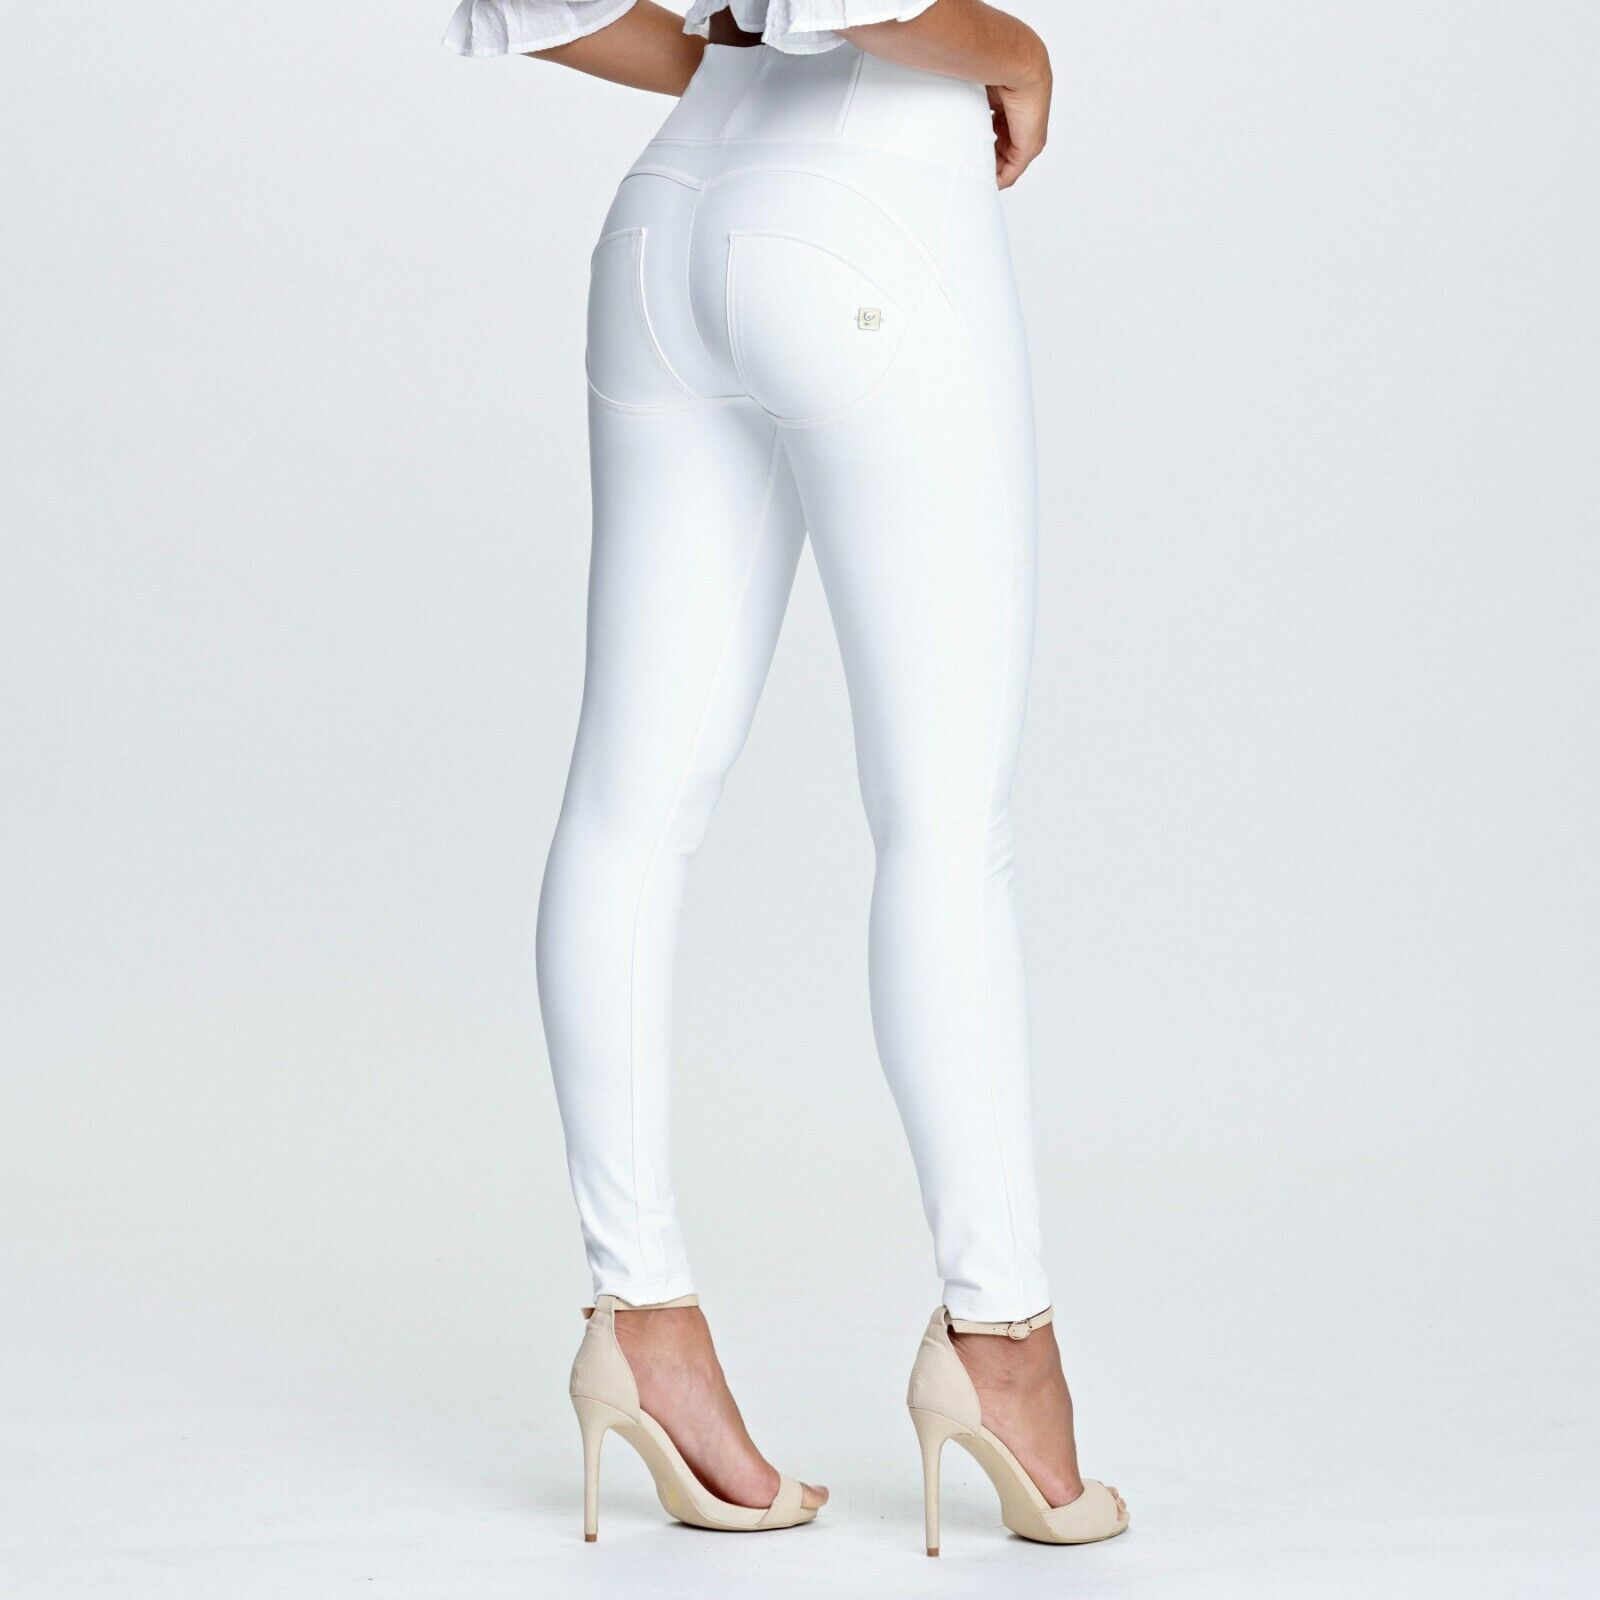 FREDDY WR.UP® SHAPING EFFECT - HIGH WAIST PANTS - SKINNY FIT -FAUX LEATHER WHITE